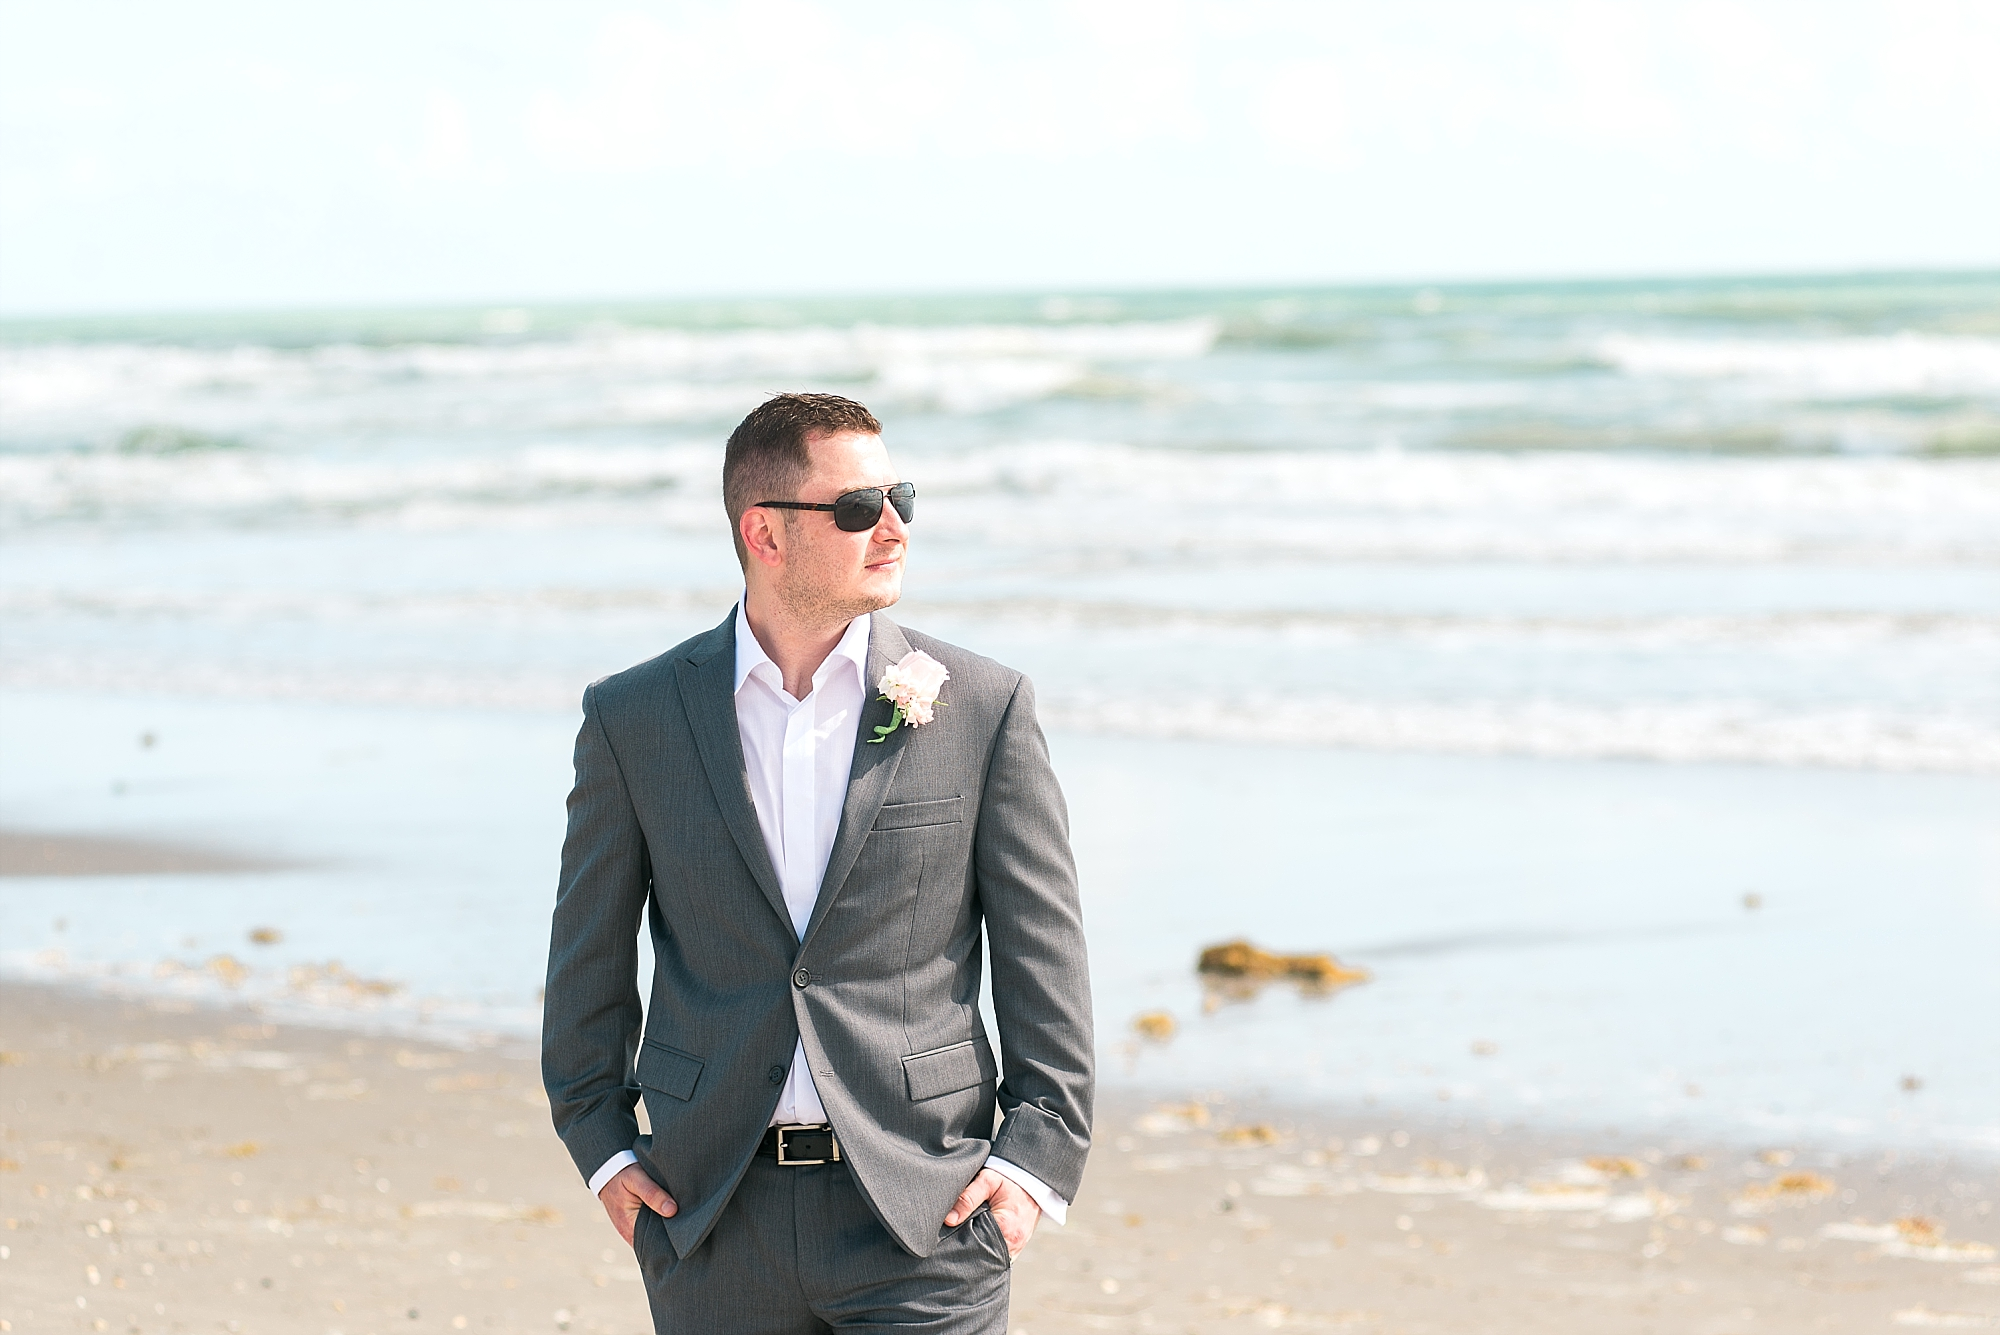 groom-on-beach